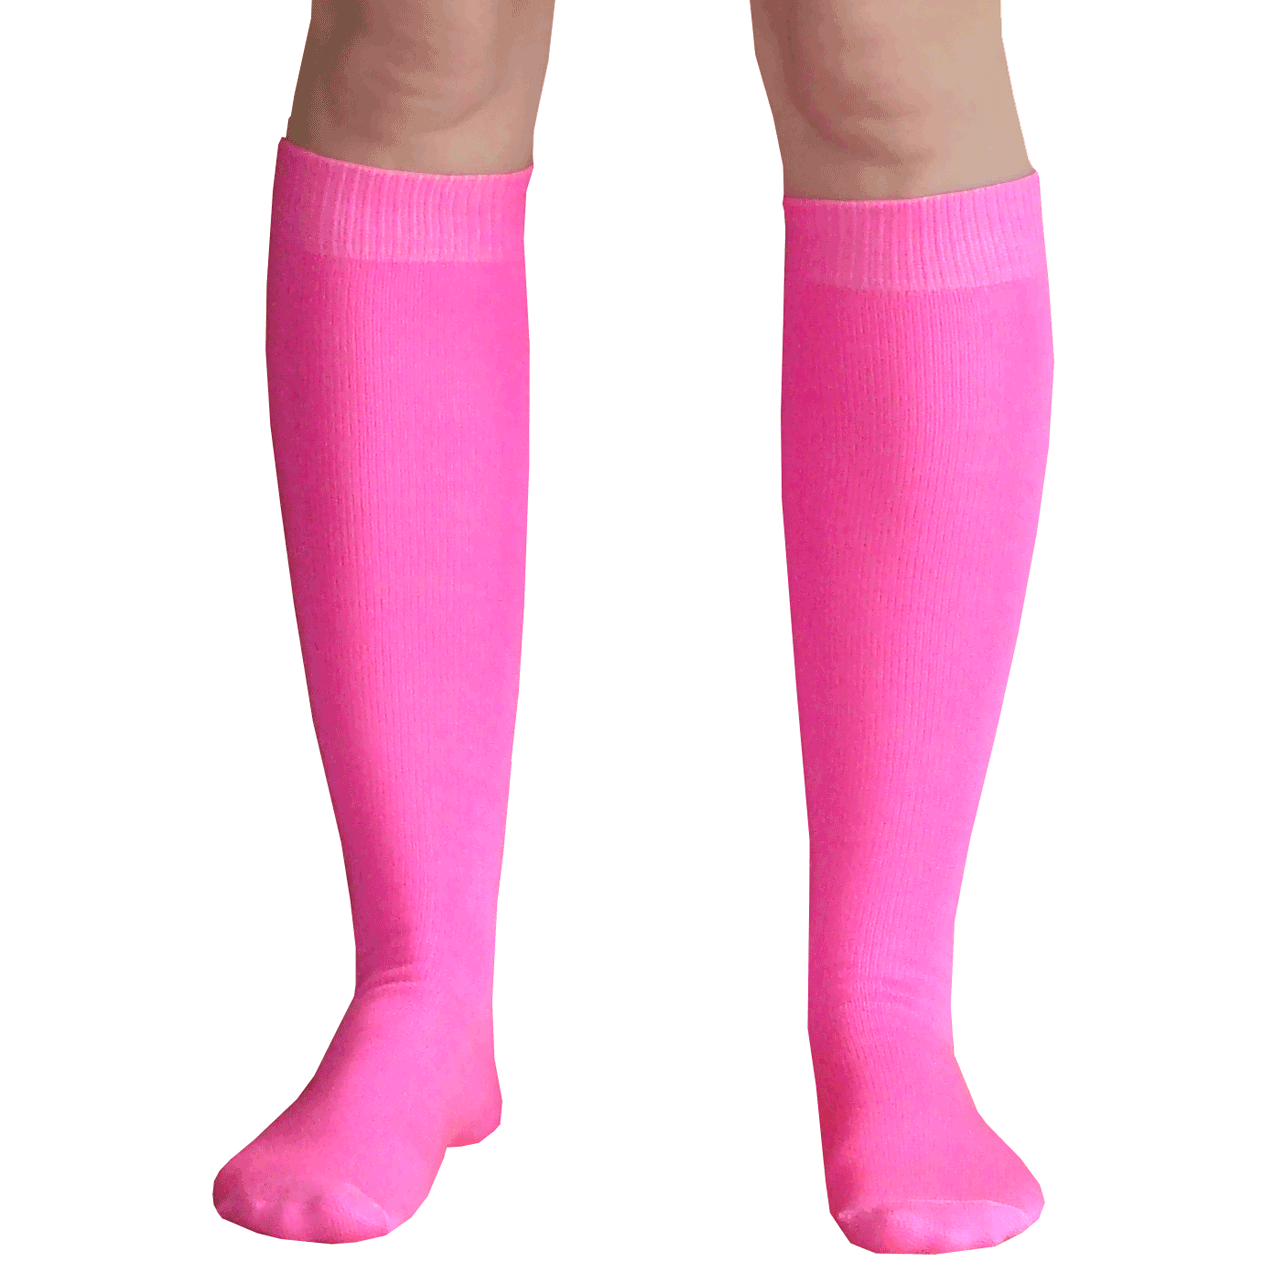 bc4cd77e59e30 Thin Solid Neon Pink Knee Hi Socks